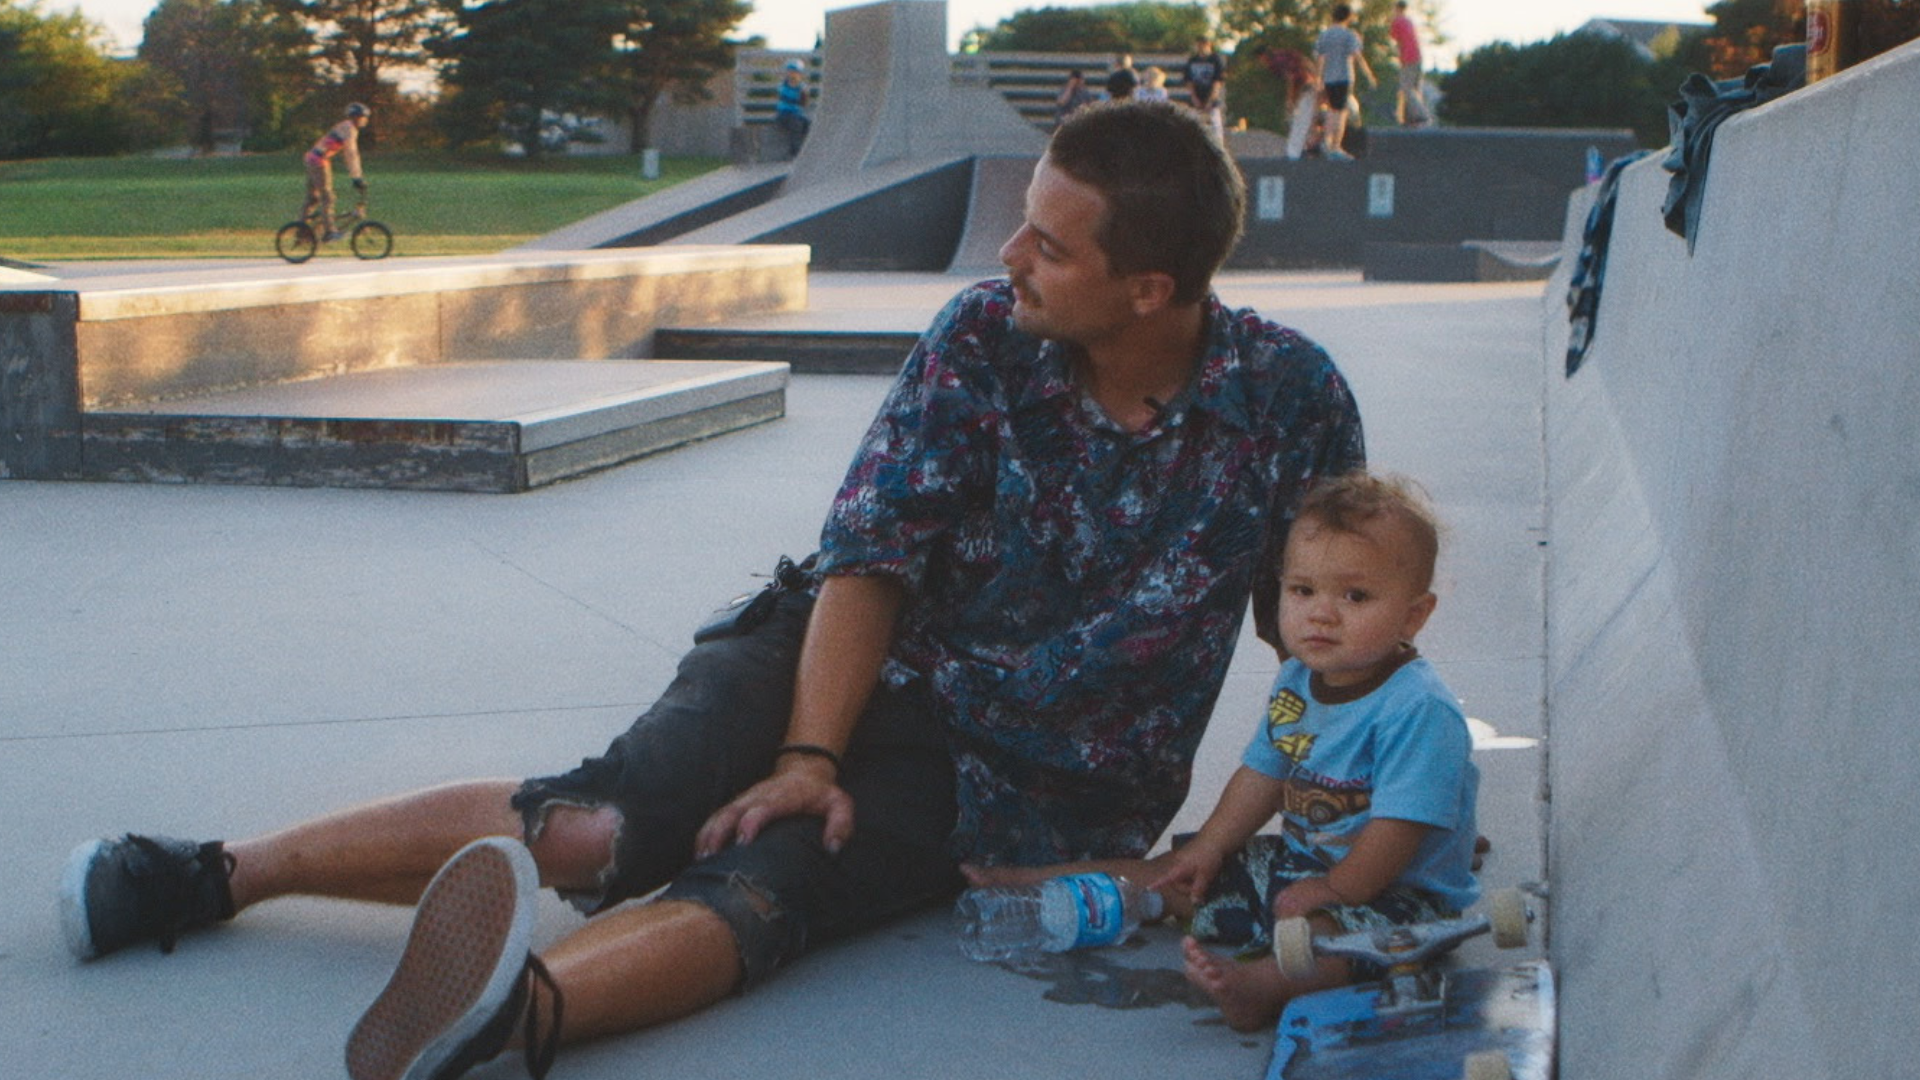 Masculinity, violence and empathy with Minding the Gap director Bing Liu